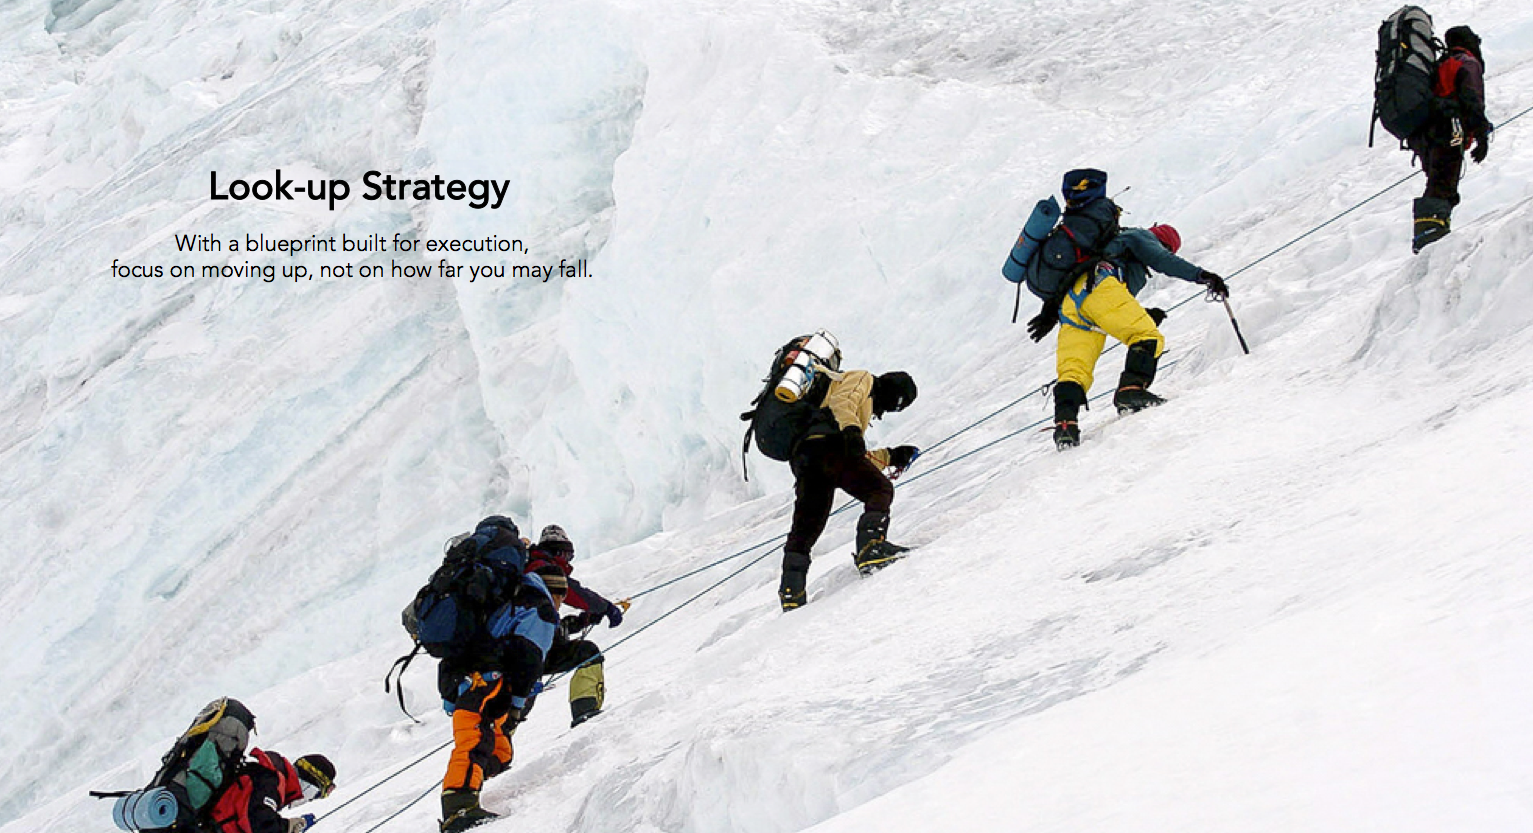 KHRONICLE - Look-up Strategy - Services copy.png